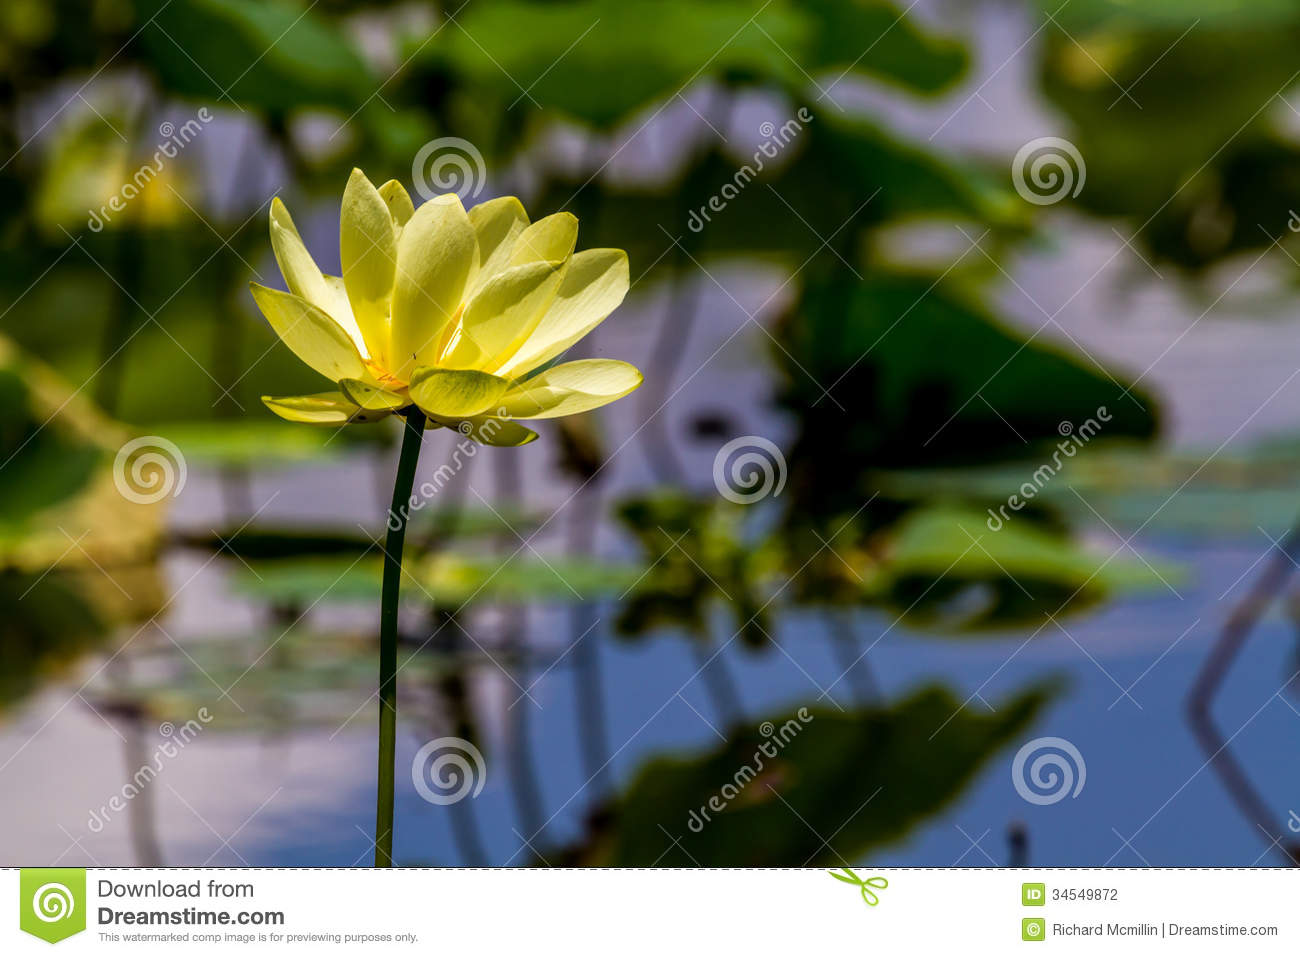 Lotus Wildflower amarilla floreciente hermosa